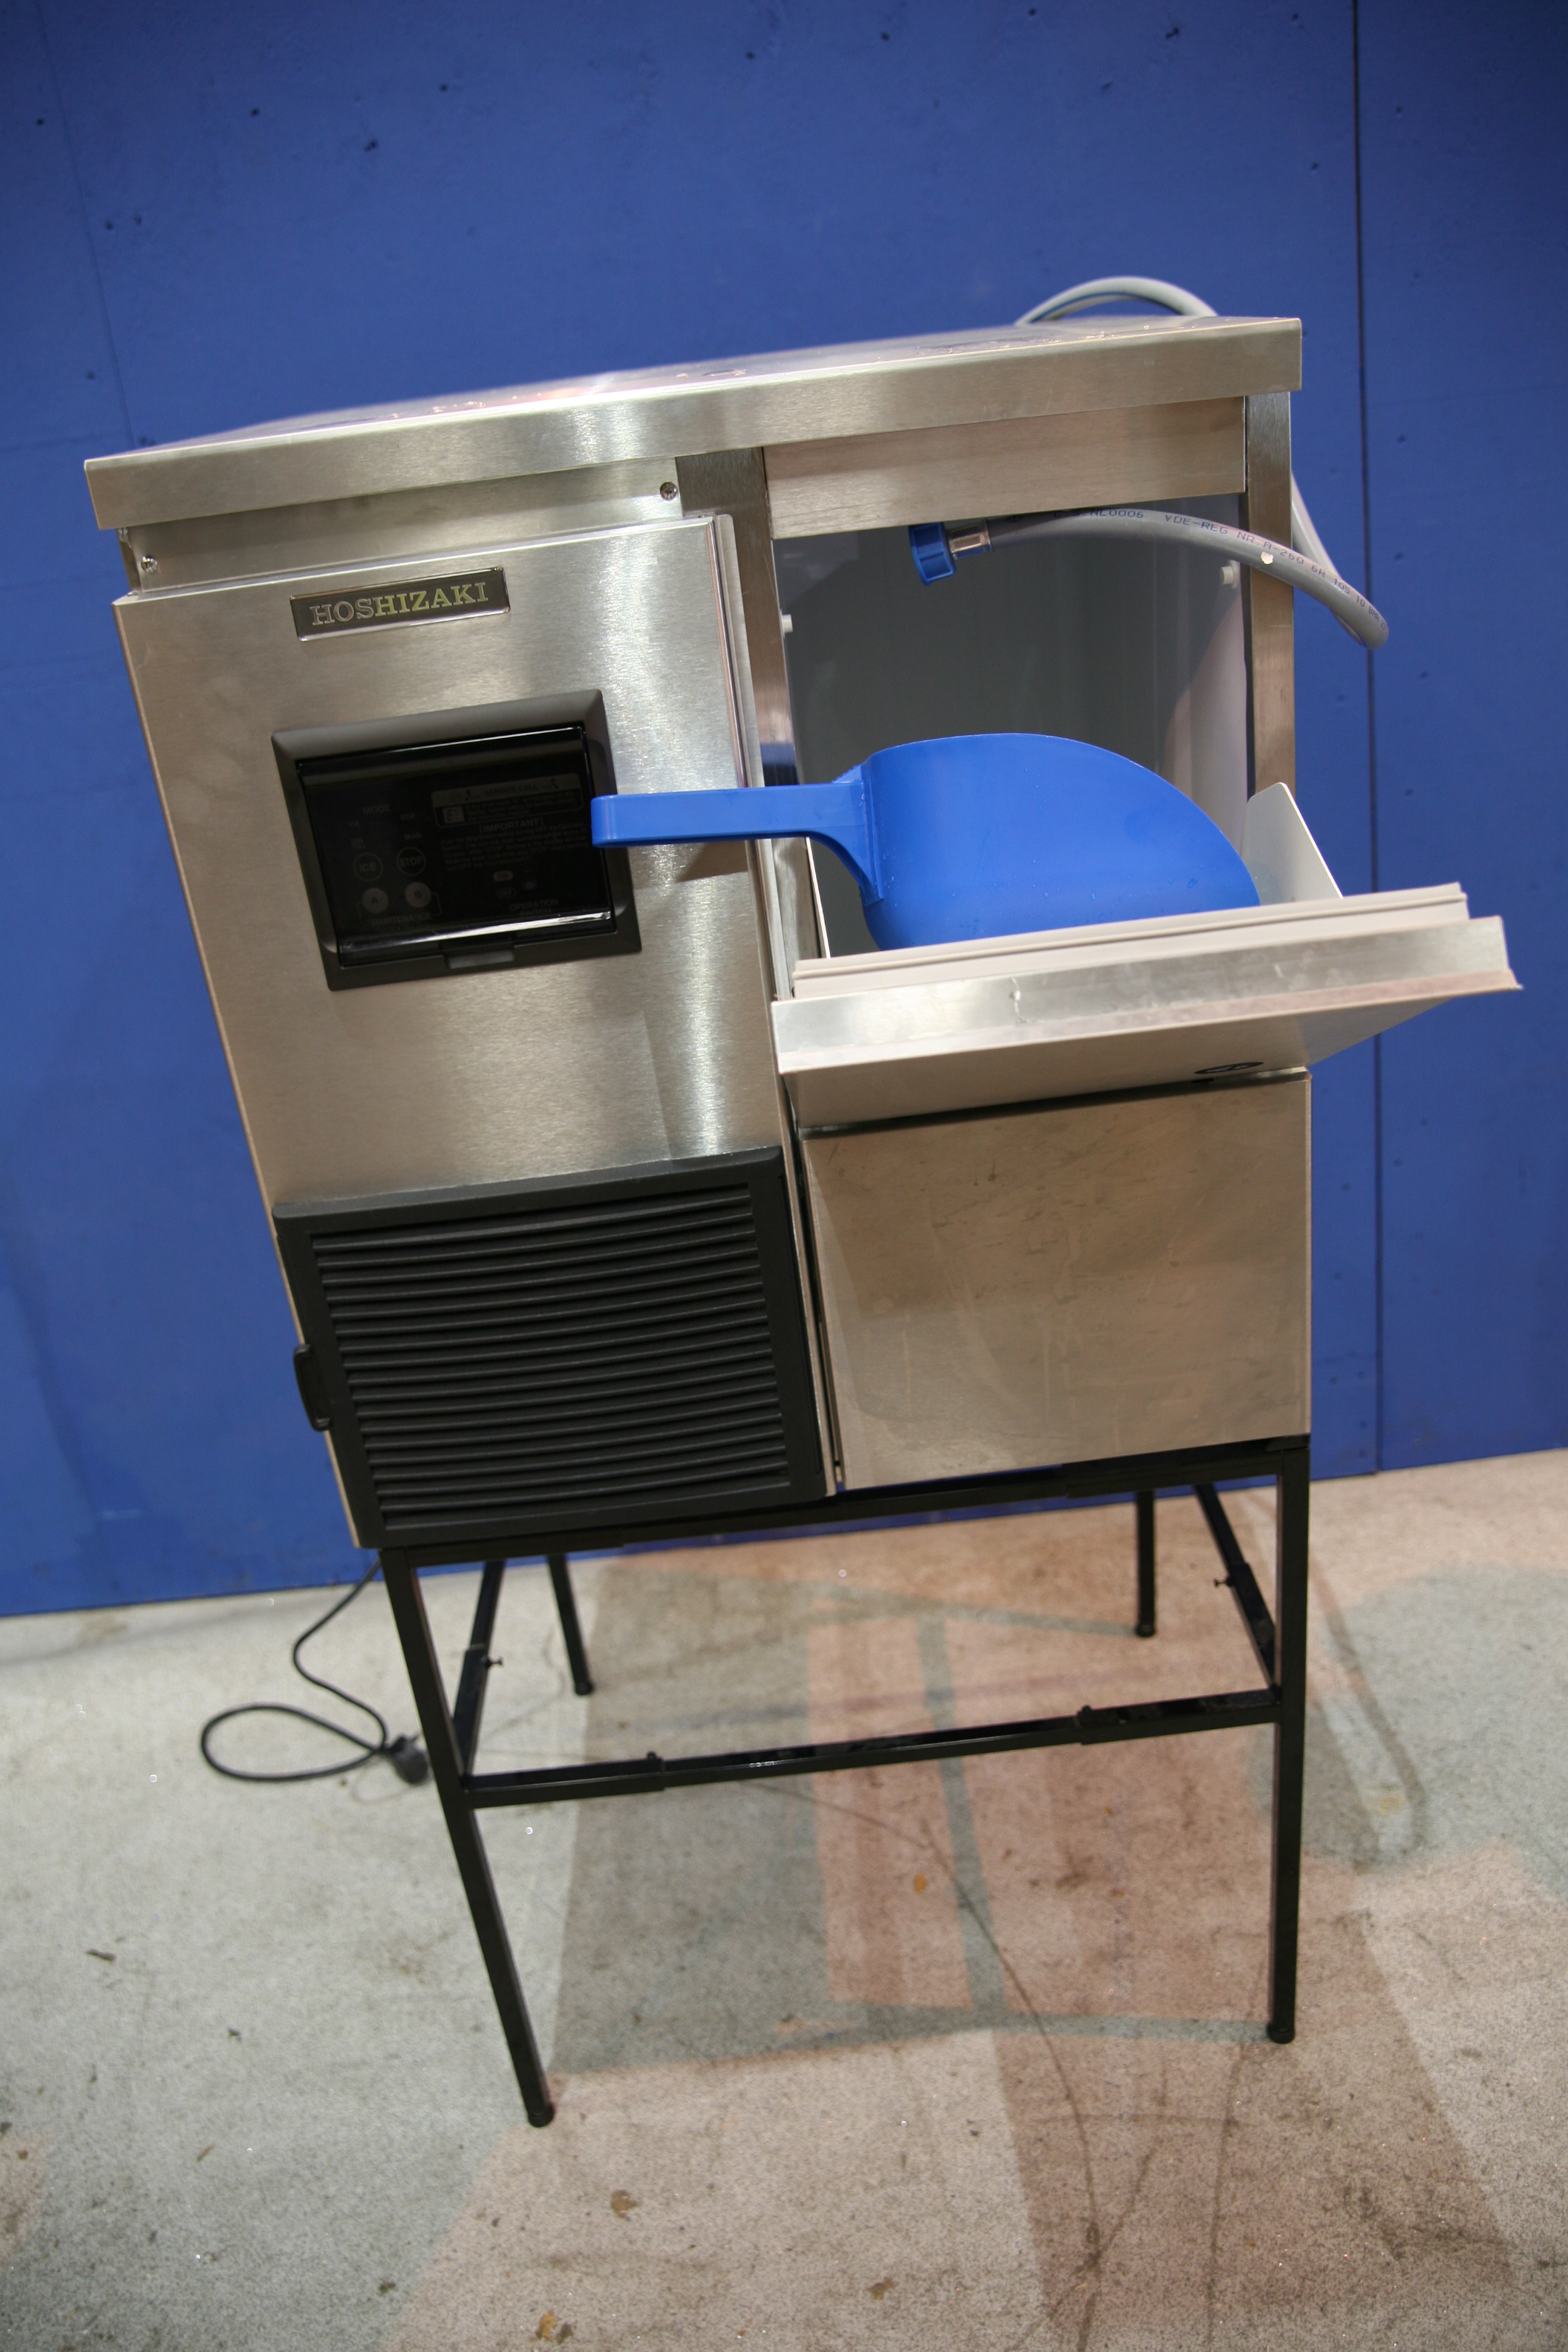 Lot 50 - Hoshizaki Ice Flaking Machine Produces flaked ice, Stainless steel construction,